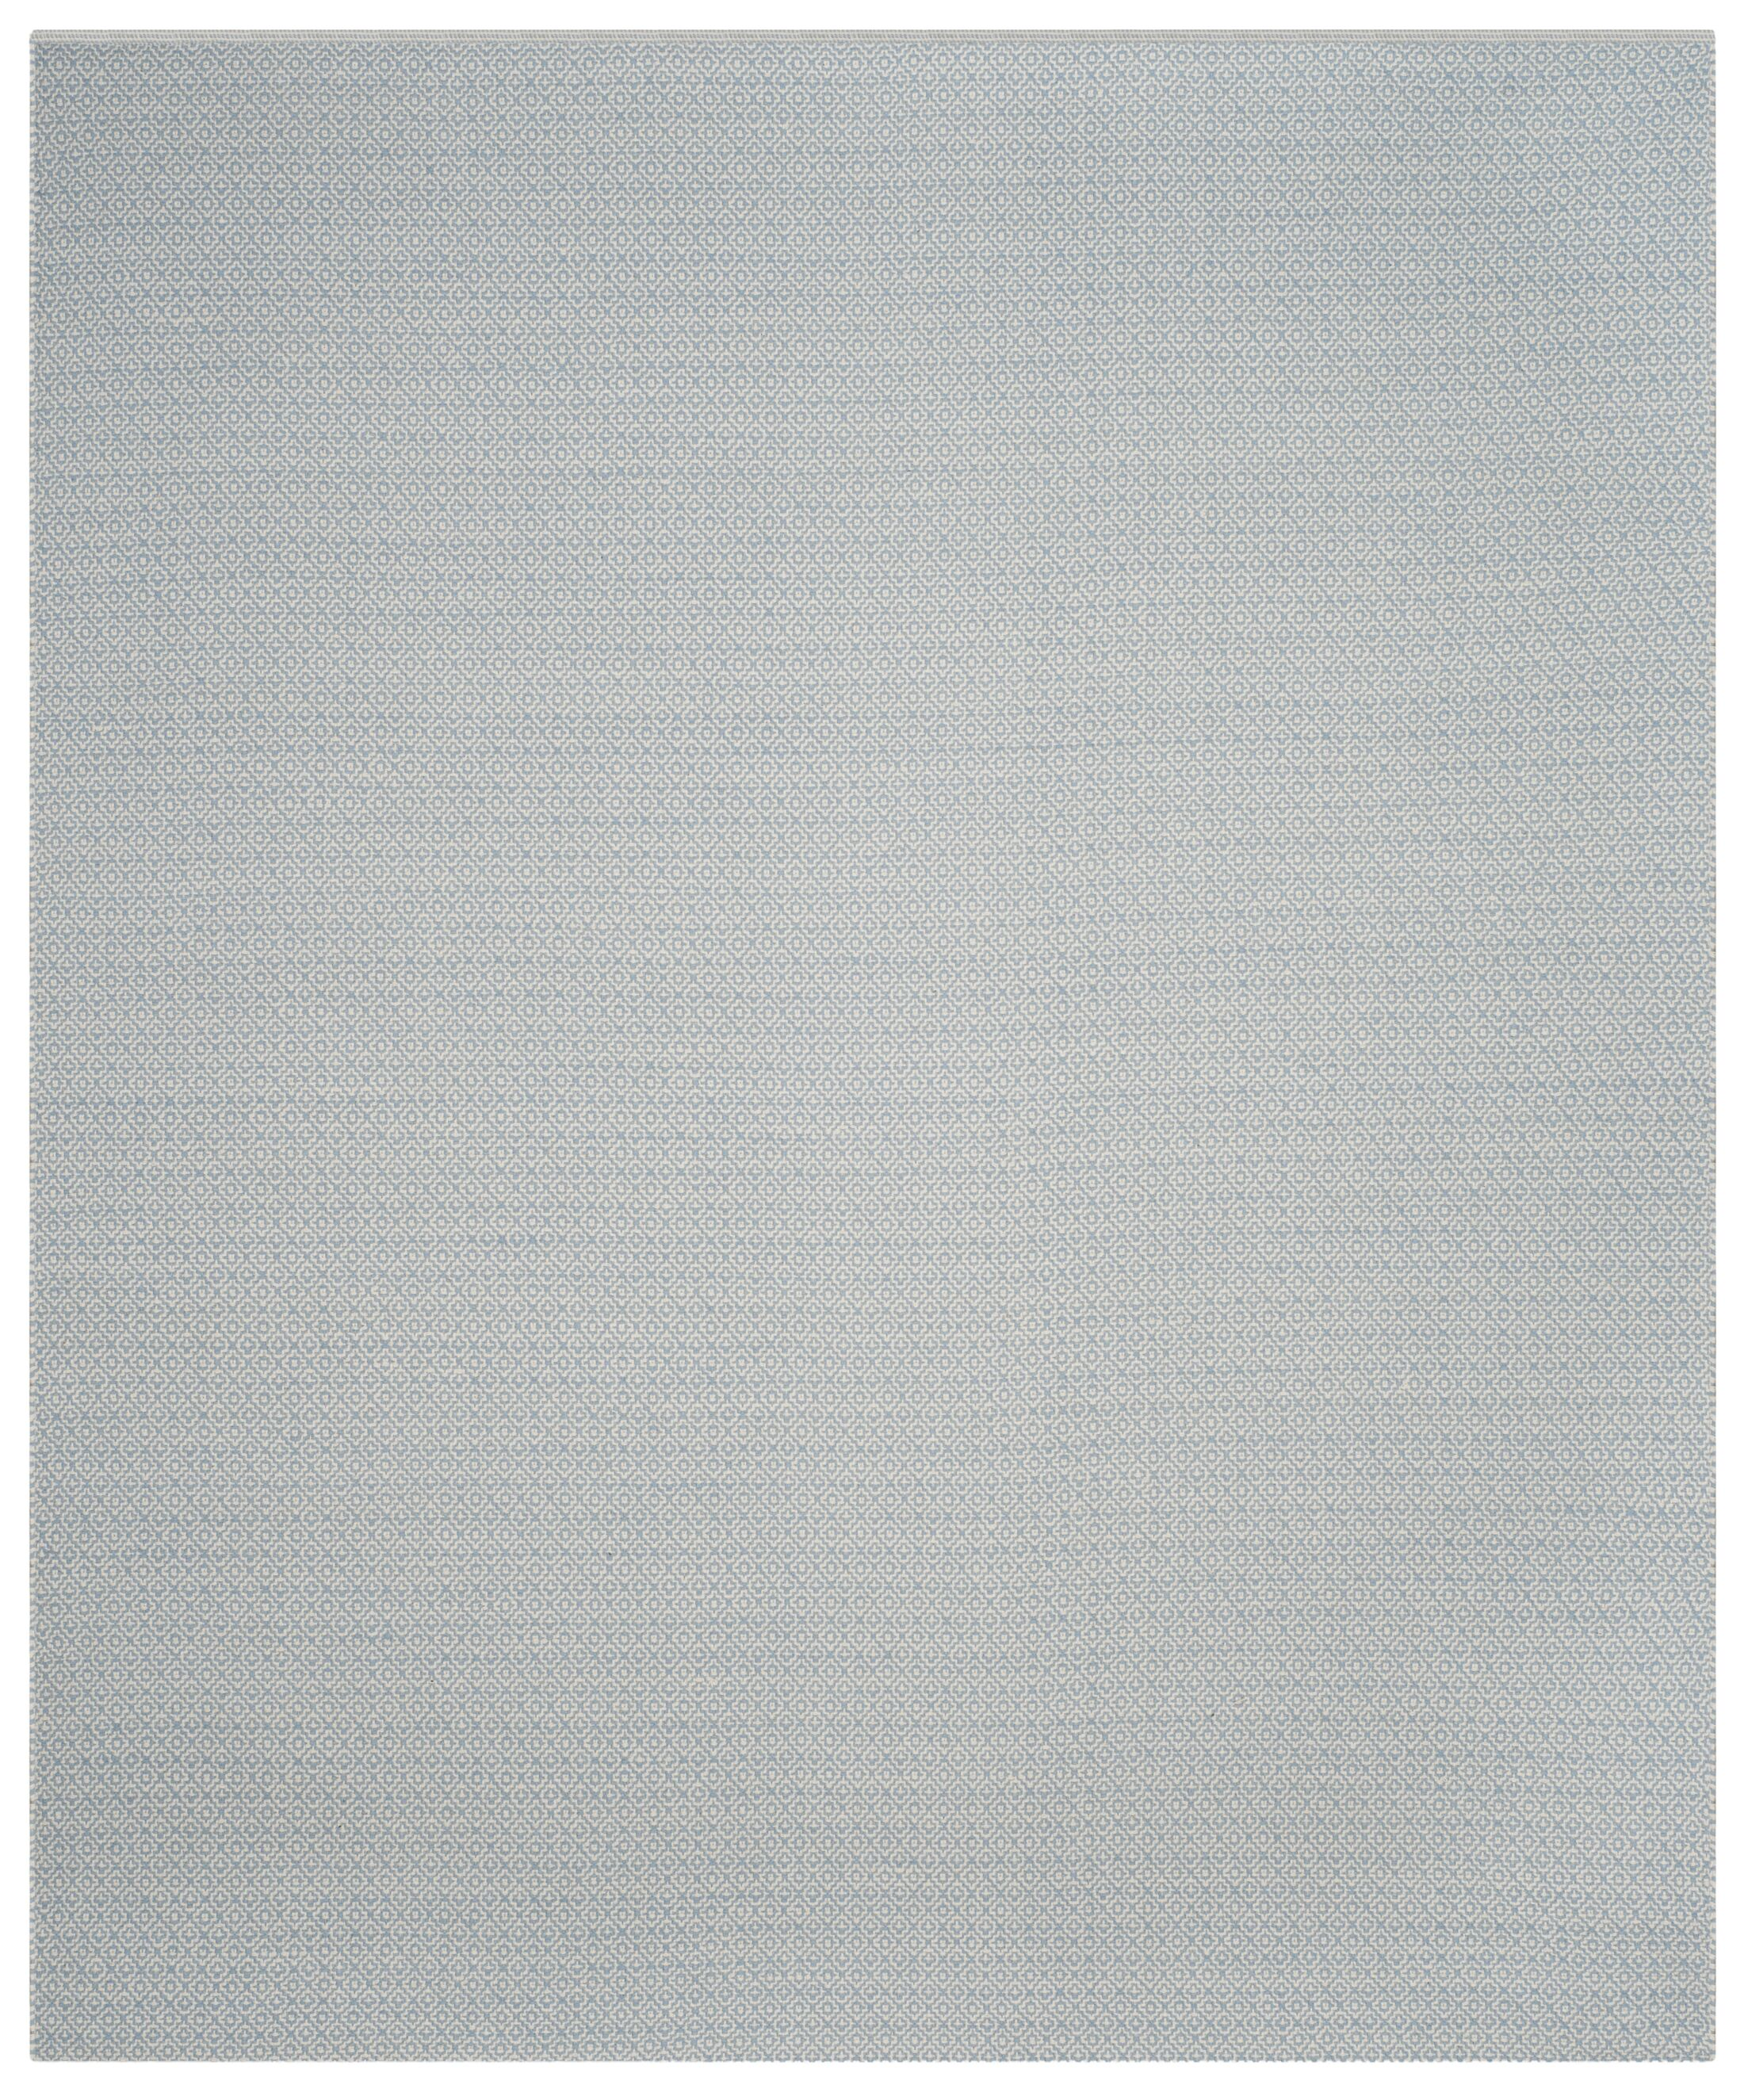 Oxbow Hand-Woven Ivory/Light Blue Area Rug Rug Size: Square 6'